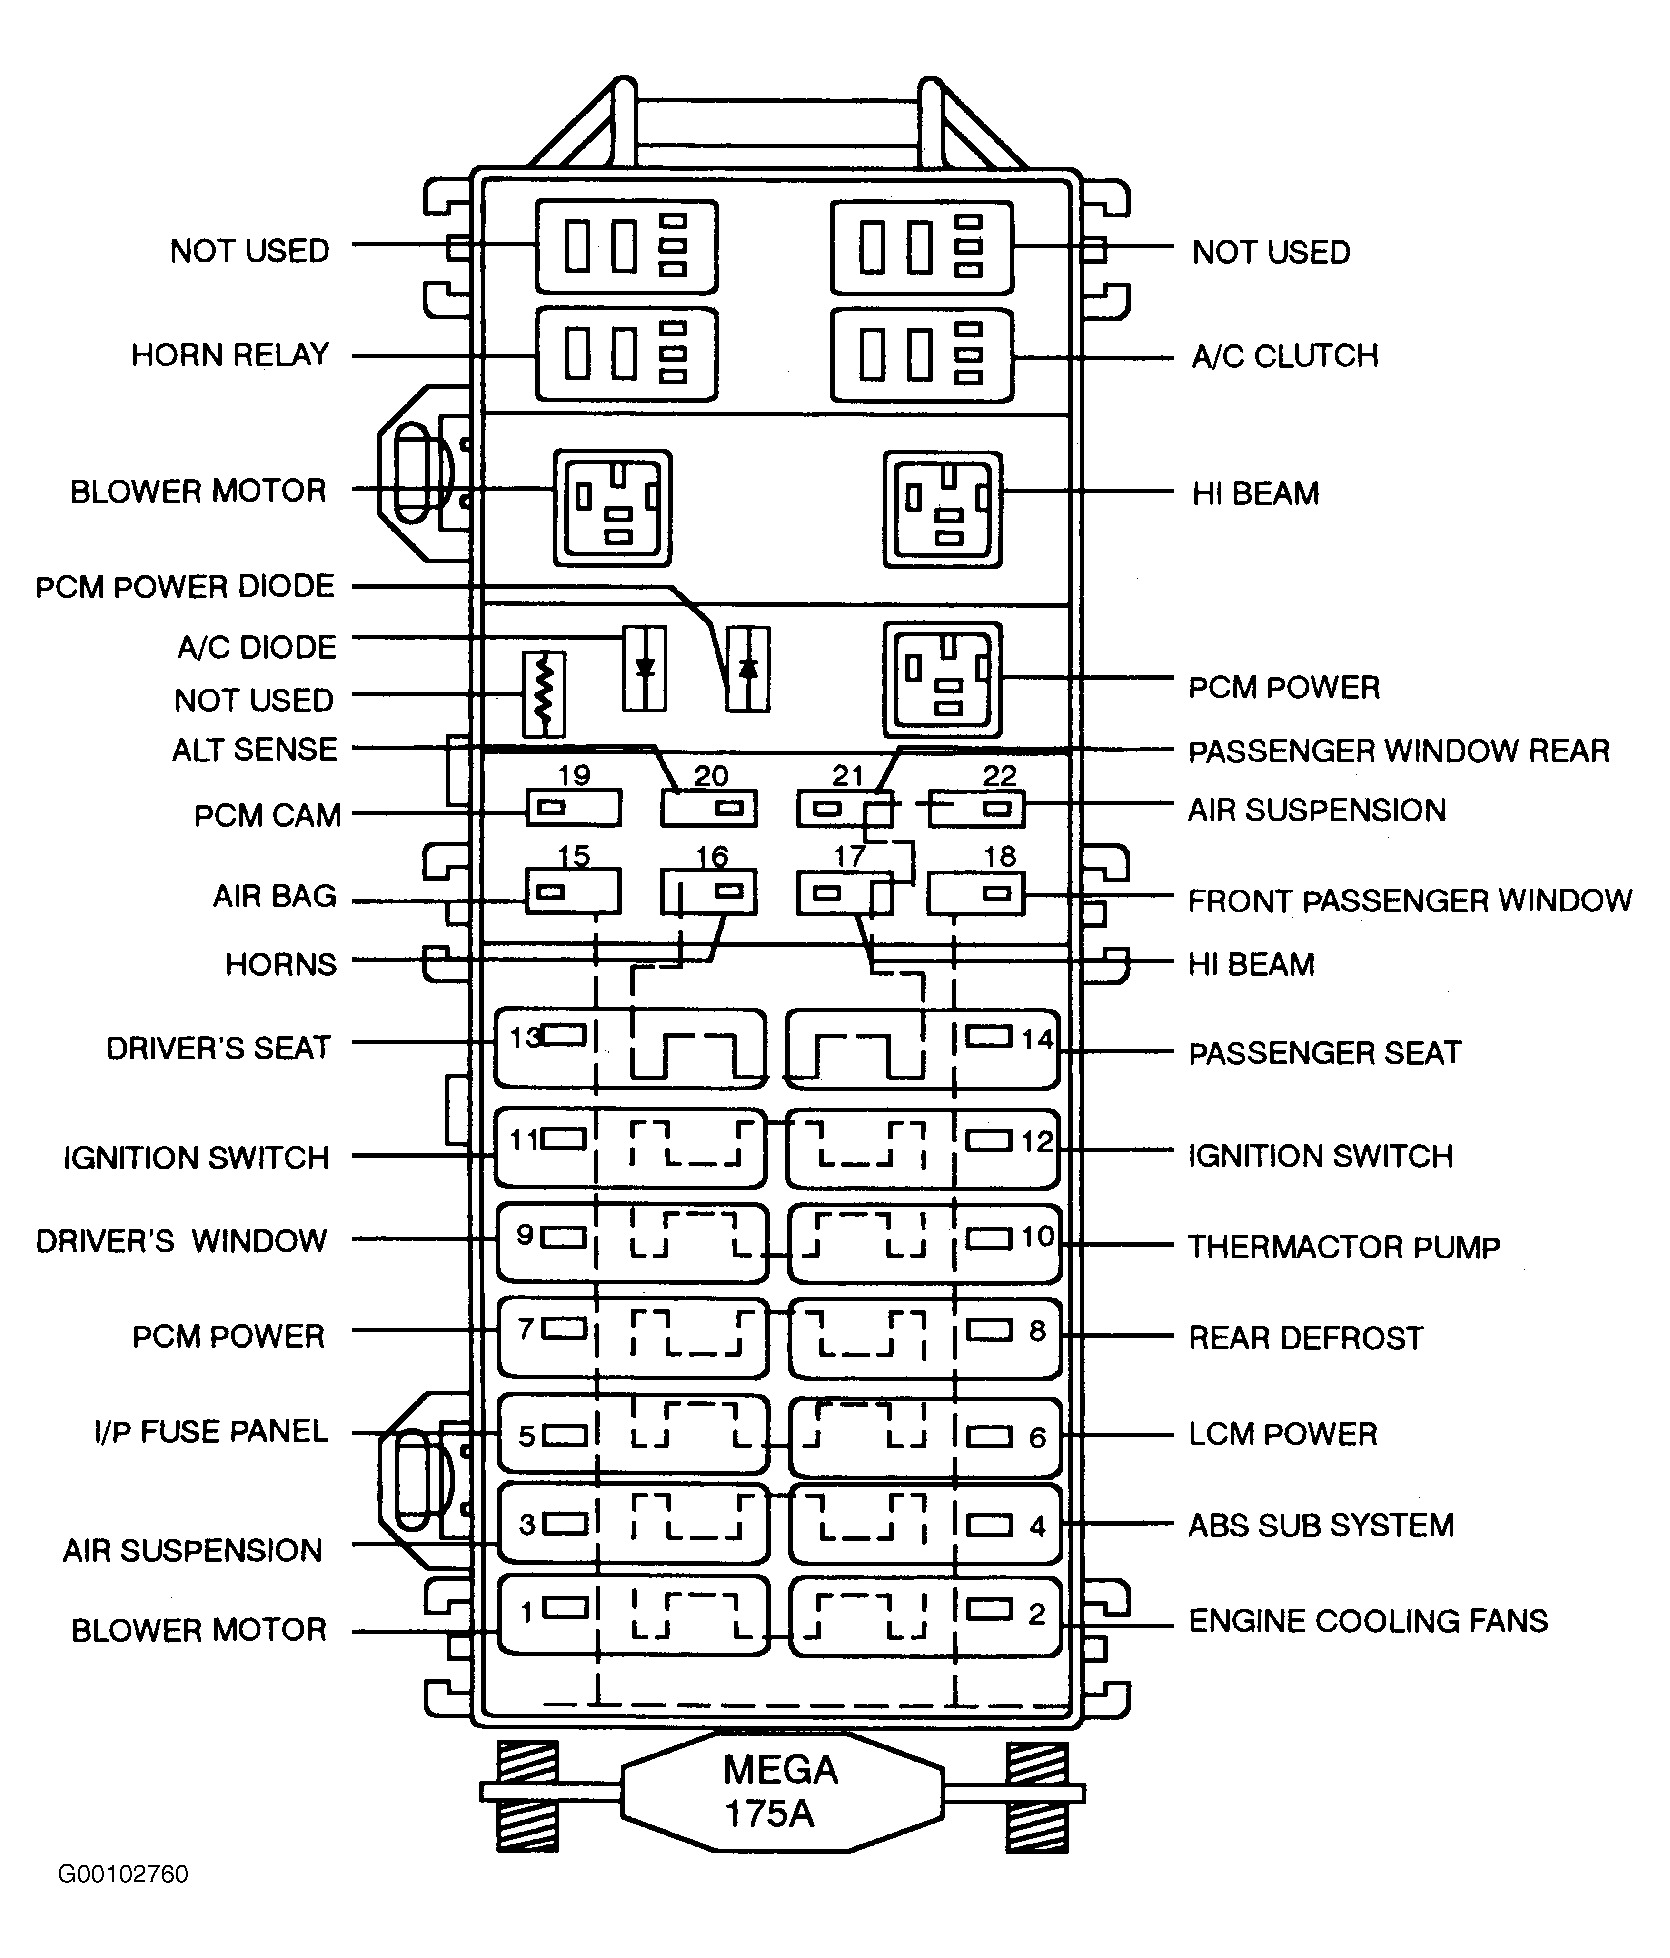 Wiring Diagram For Lincoln Navigator